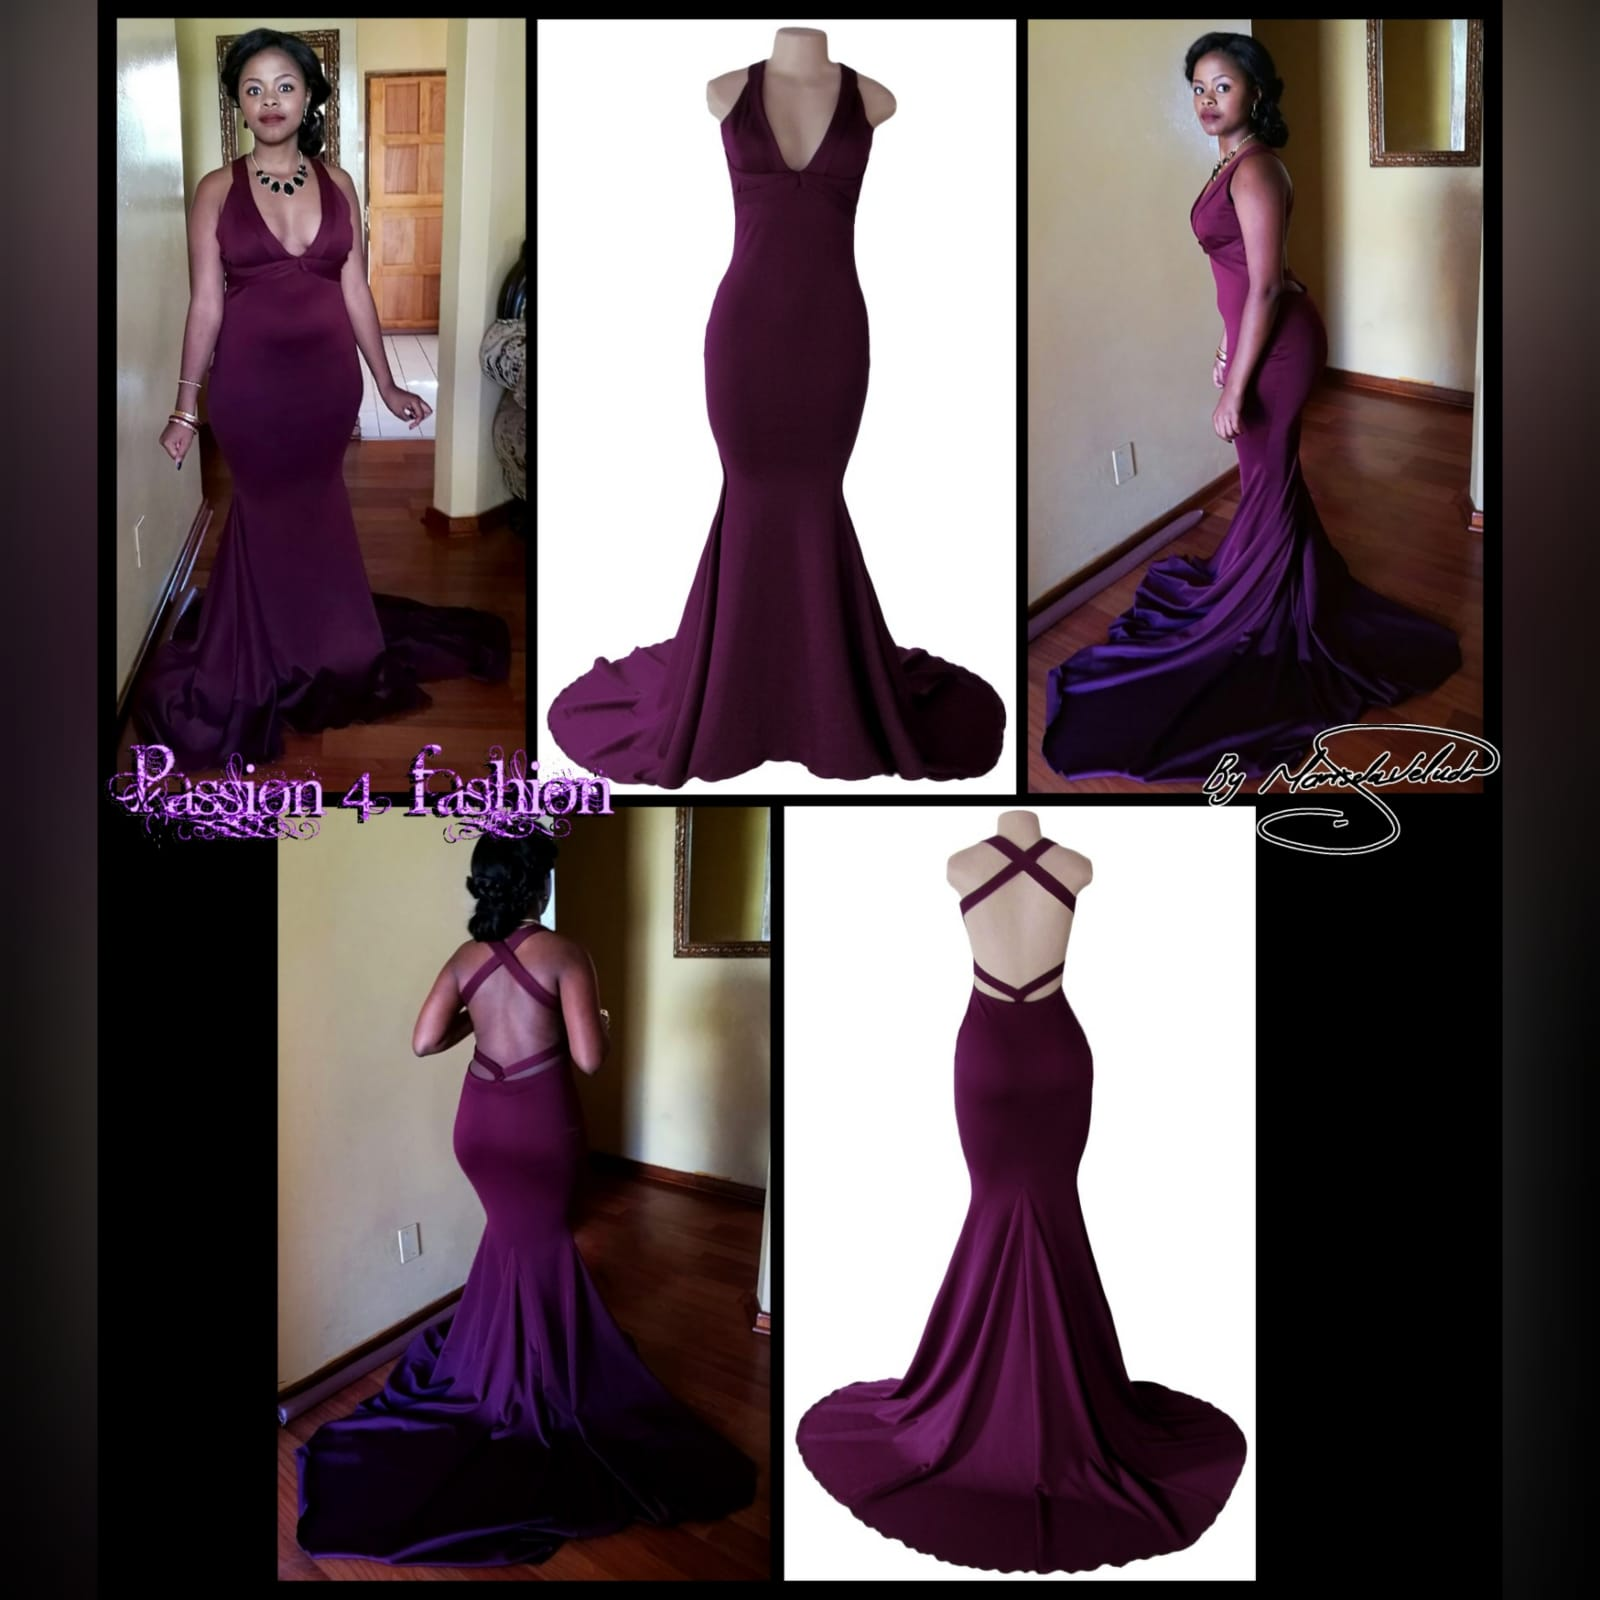 Plum soft mermaid sexy prom dress 3 plum soft mermaid sexy prom dress. With a plunging neckline, naked back with strap details and long train.